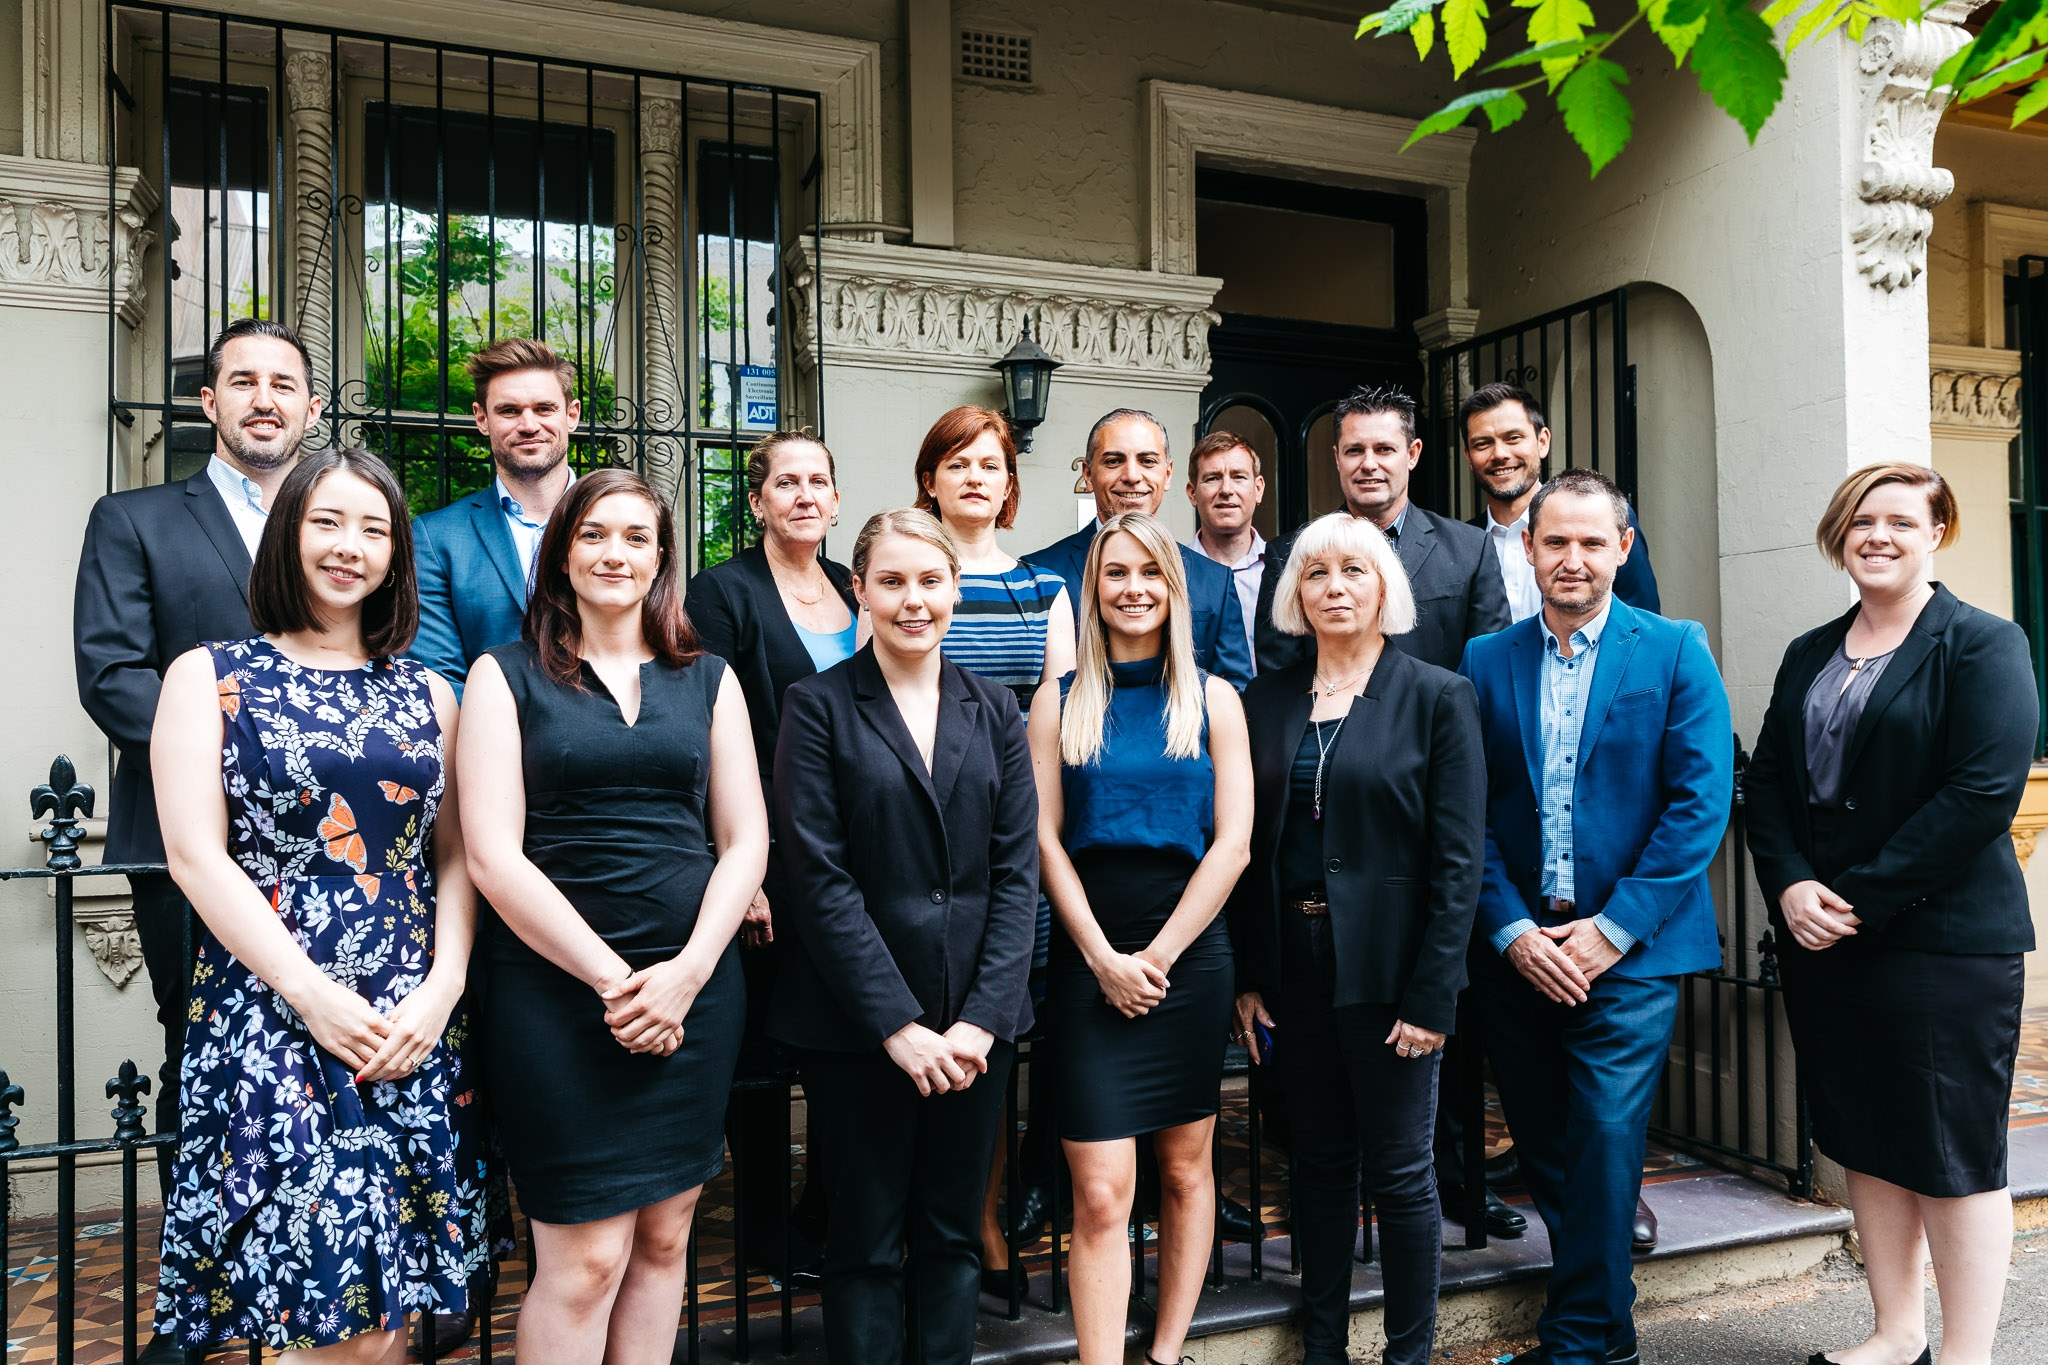 OUR TEAM - Meet the team behind Building Certificates Australia